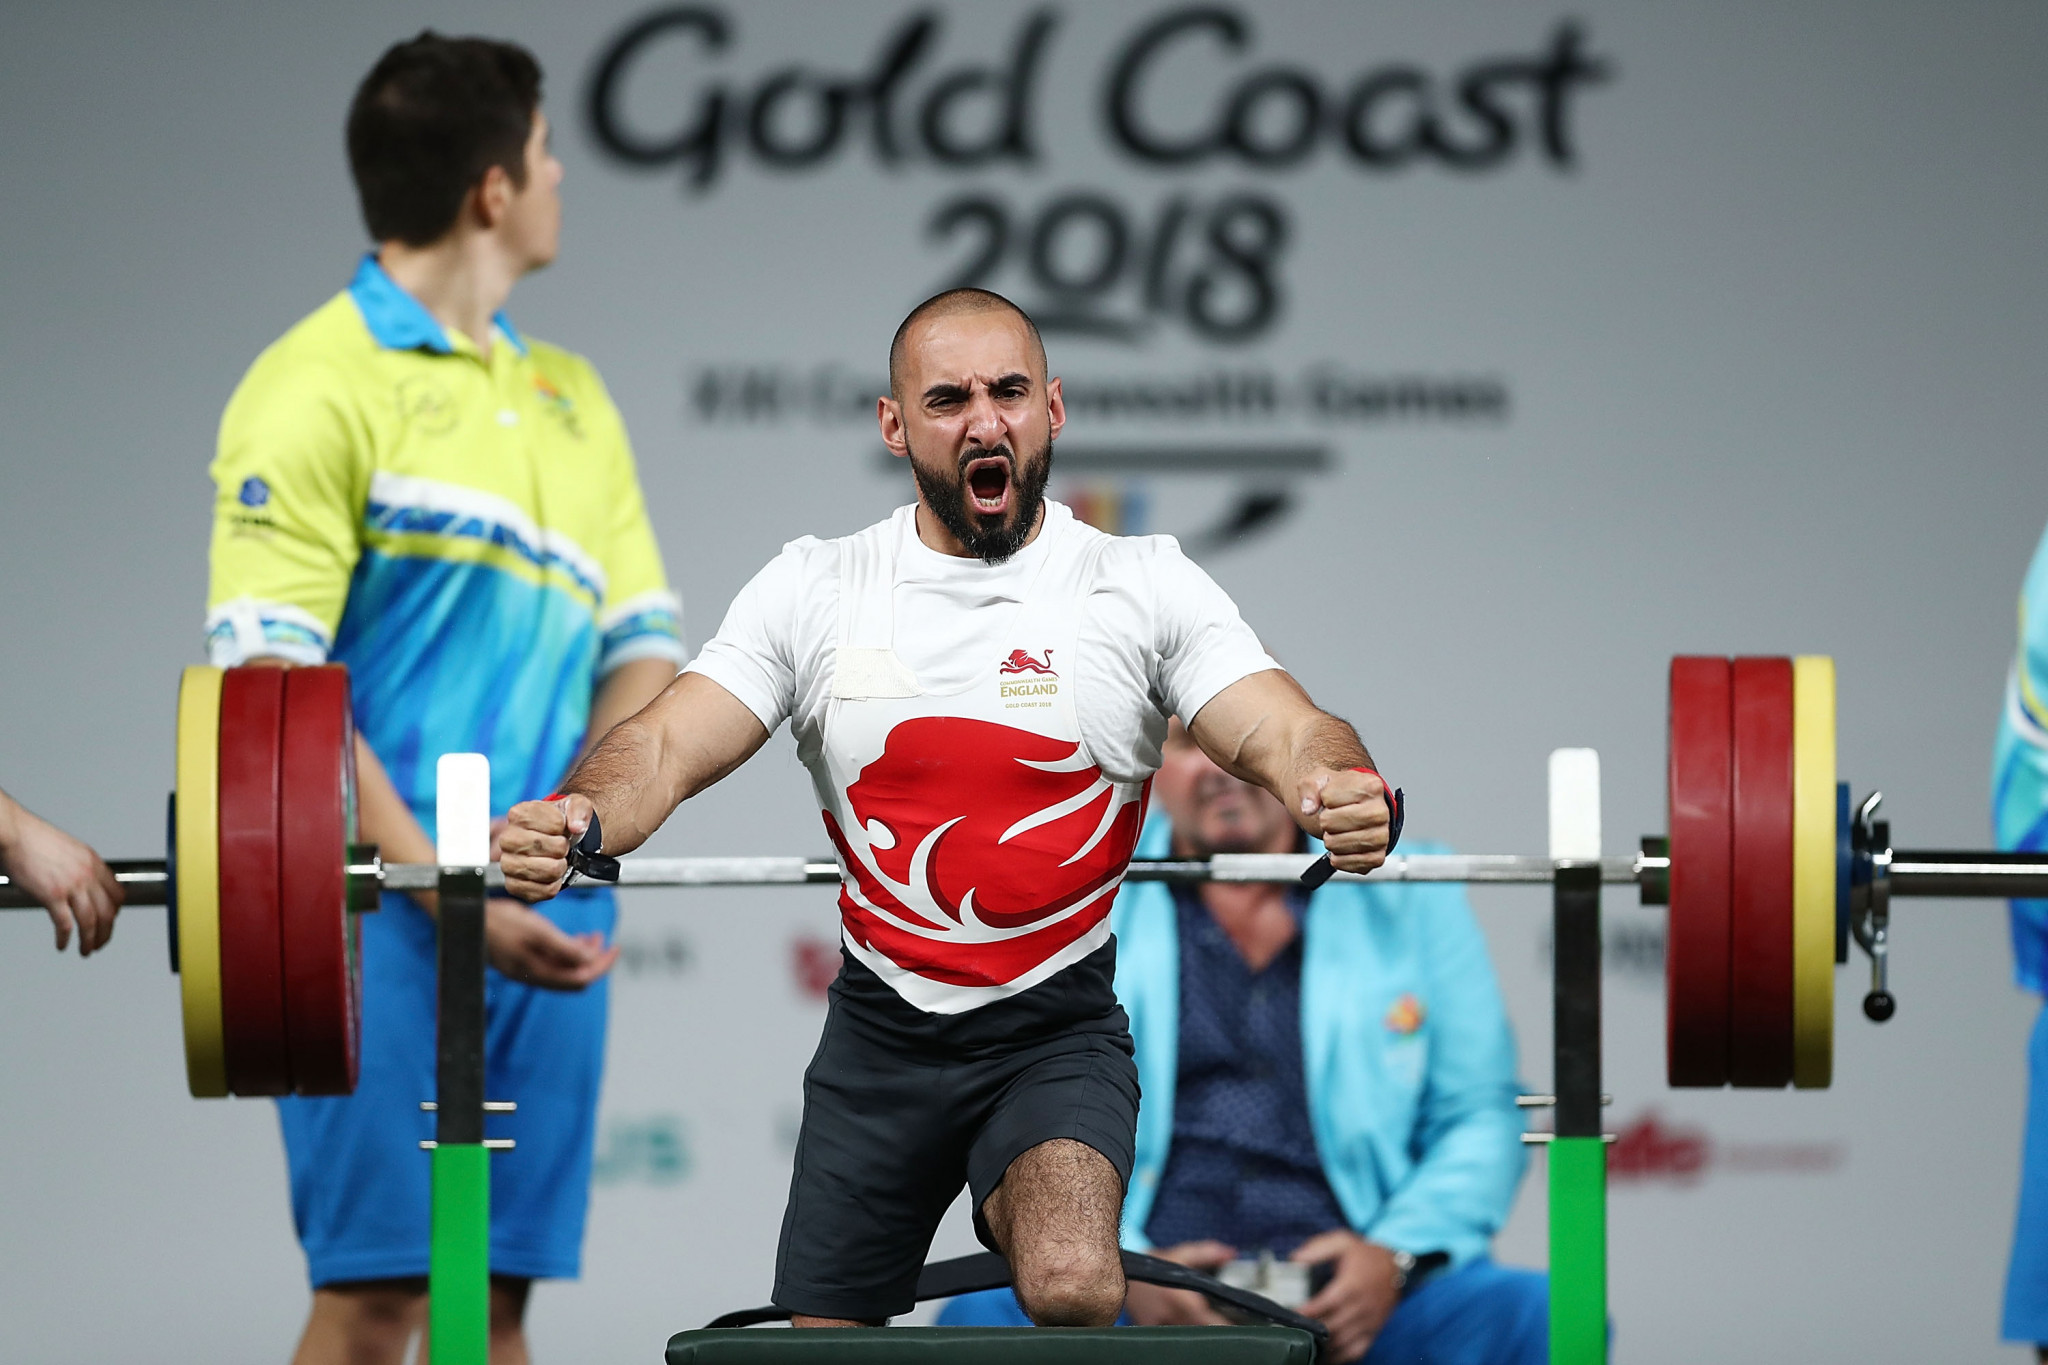 Manchester set for second leg of 2021 Para Powerlifting World Cup season